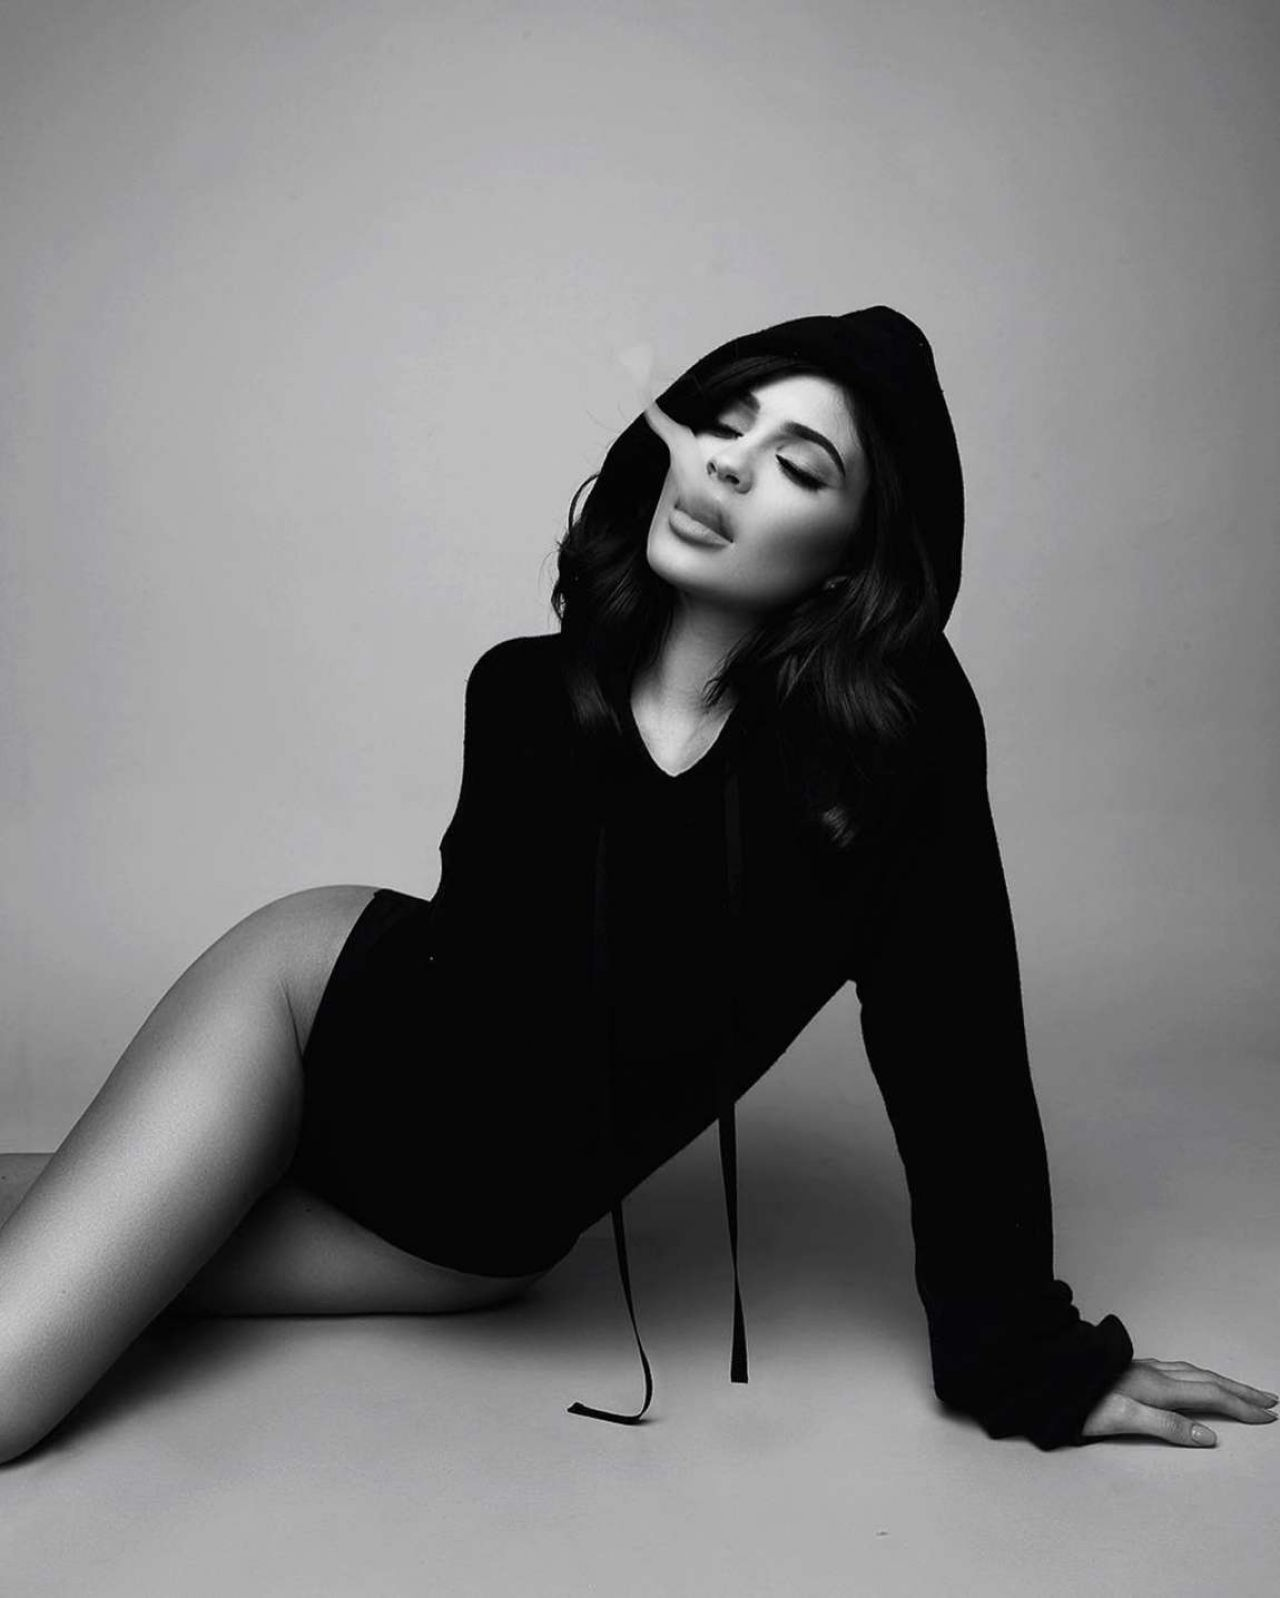 Happy Birthday Kylie Jenner Her Most Eyebrow-Raising Shoots Yet - Lifewithoutandy-9496